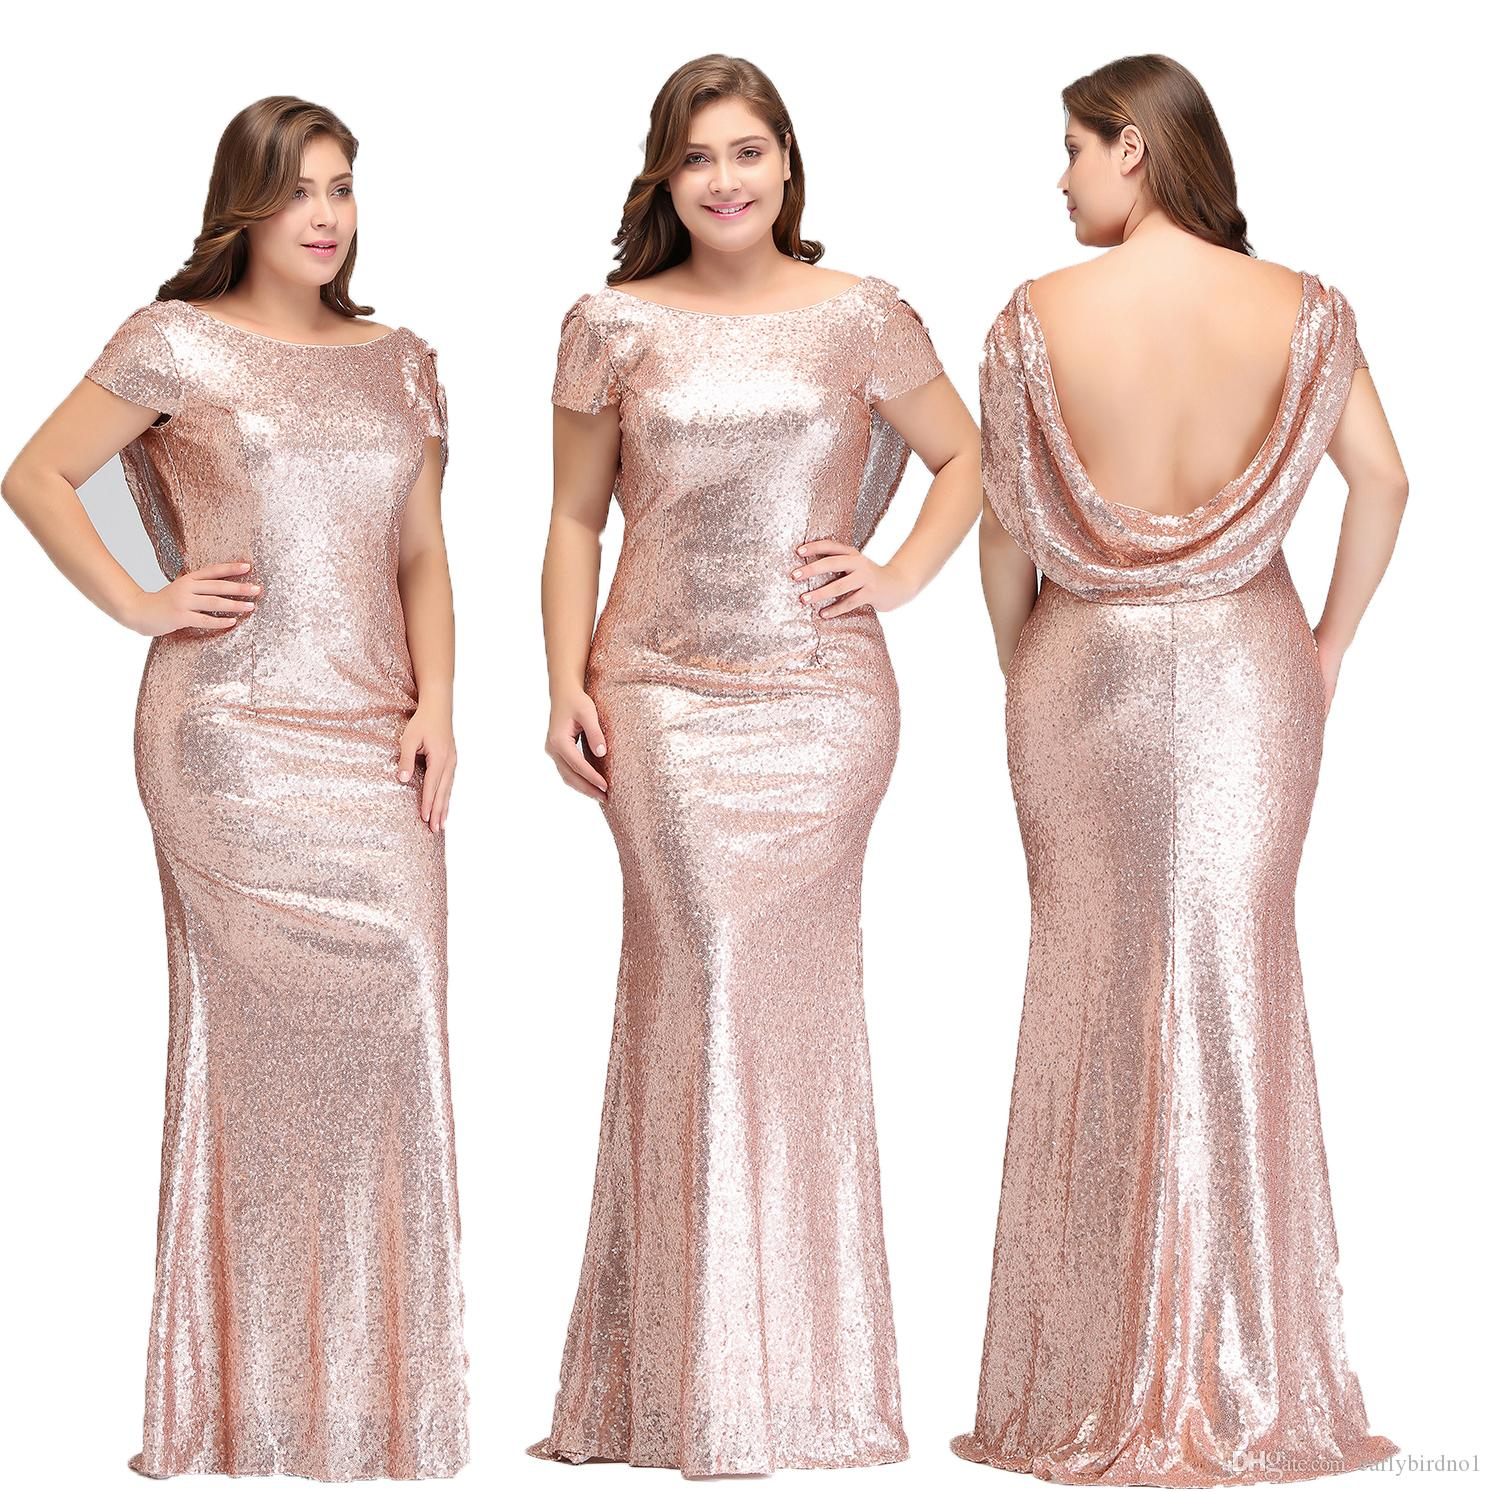 Designer Rose Gold Sequins Bridesmaid Dresses Capped Short Sleeves Sexy  Backless Scoop Neck Formal Evening Gowns Plus Size Prom Dress 344 Bridal  Party ... 659278d825af